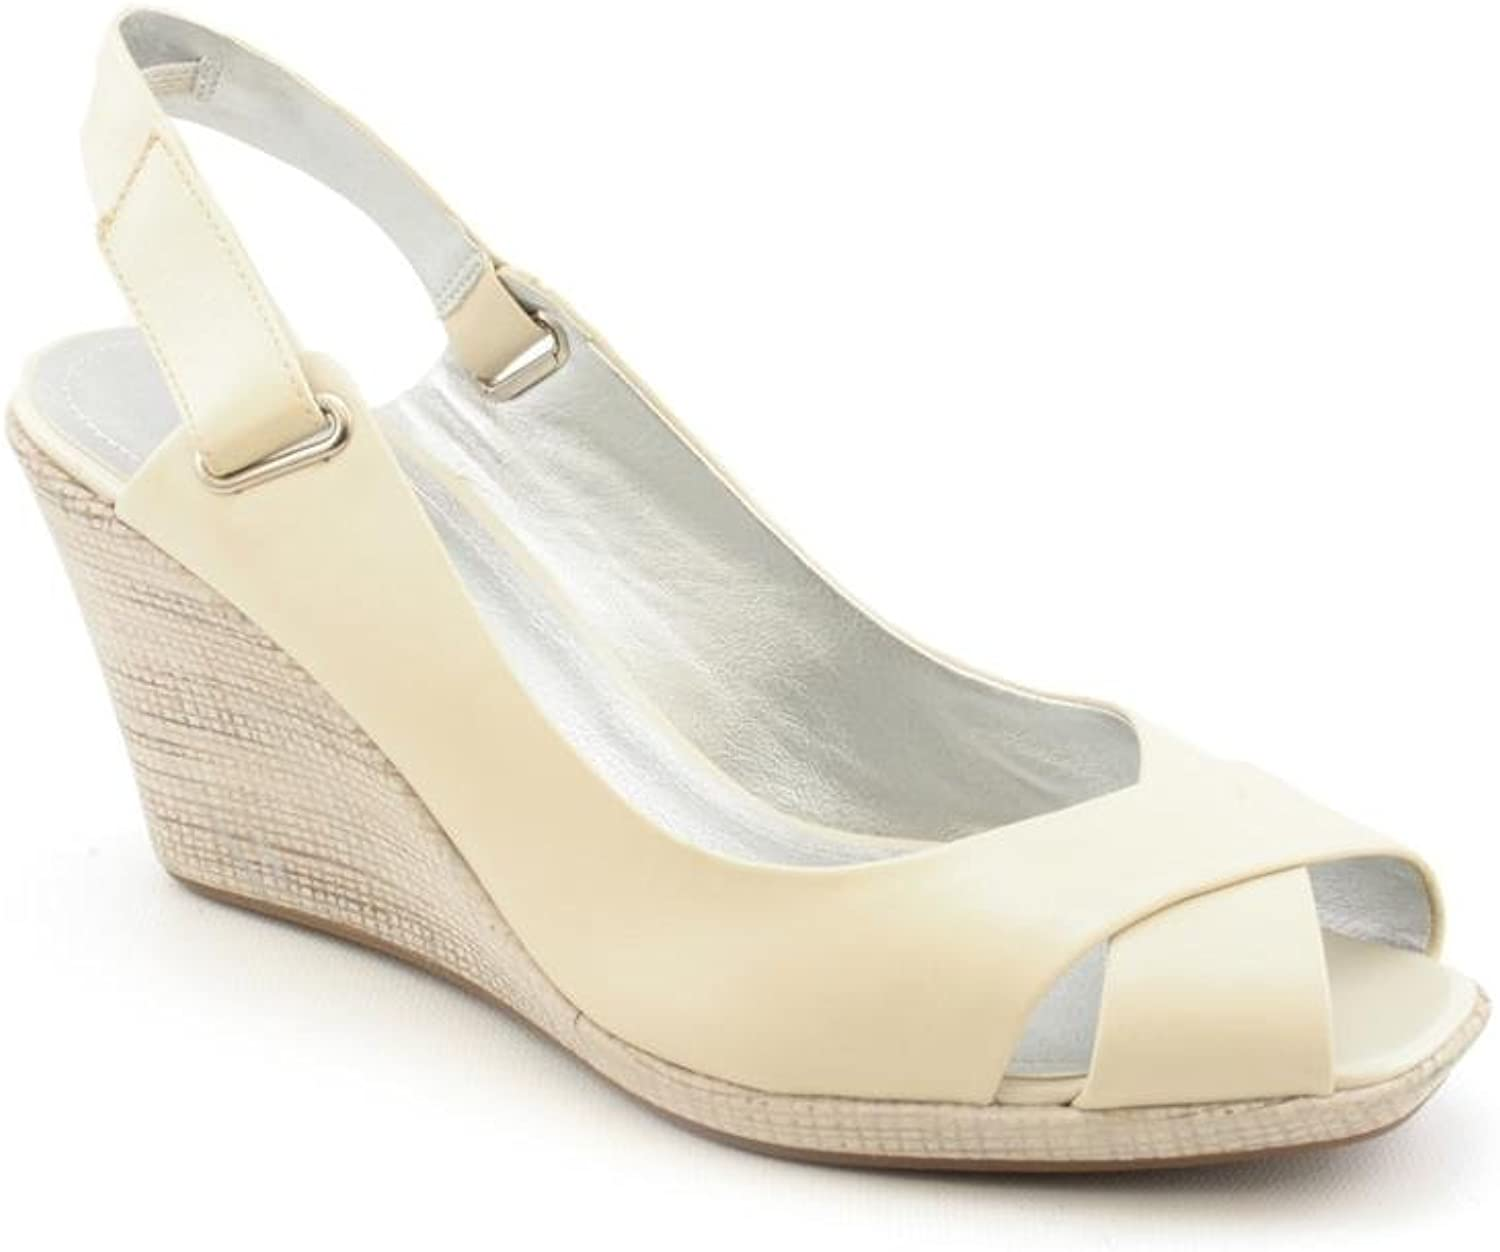 Kenneth Cole Reaction Women's Let It Knock Leather Wedge Ivory 9.5 M US